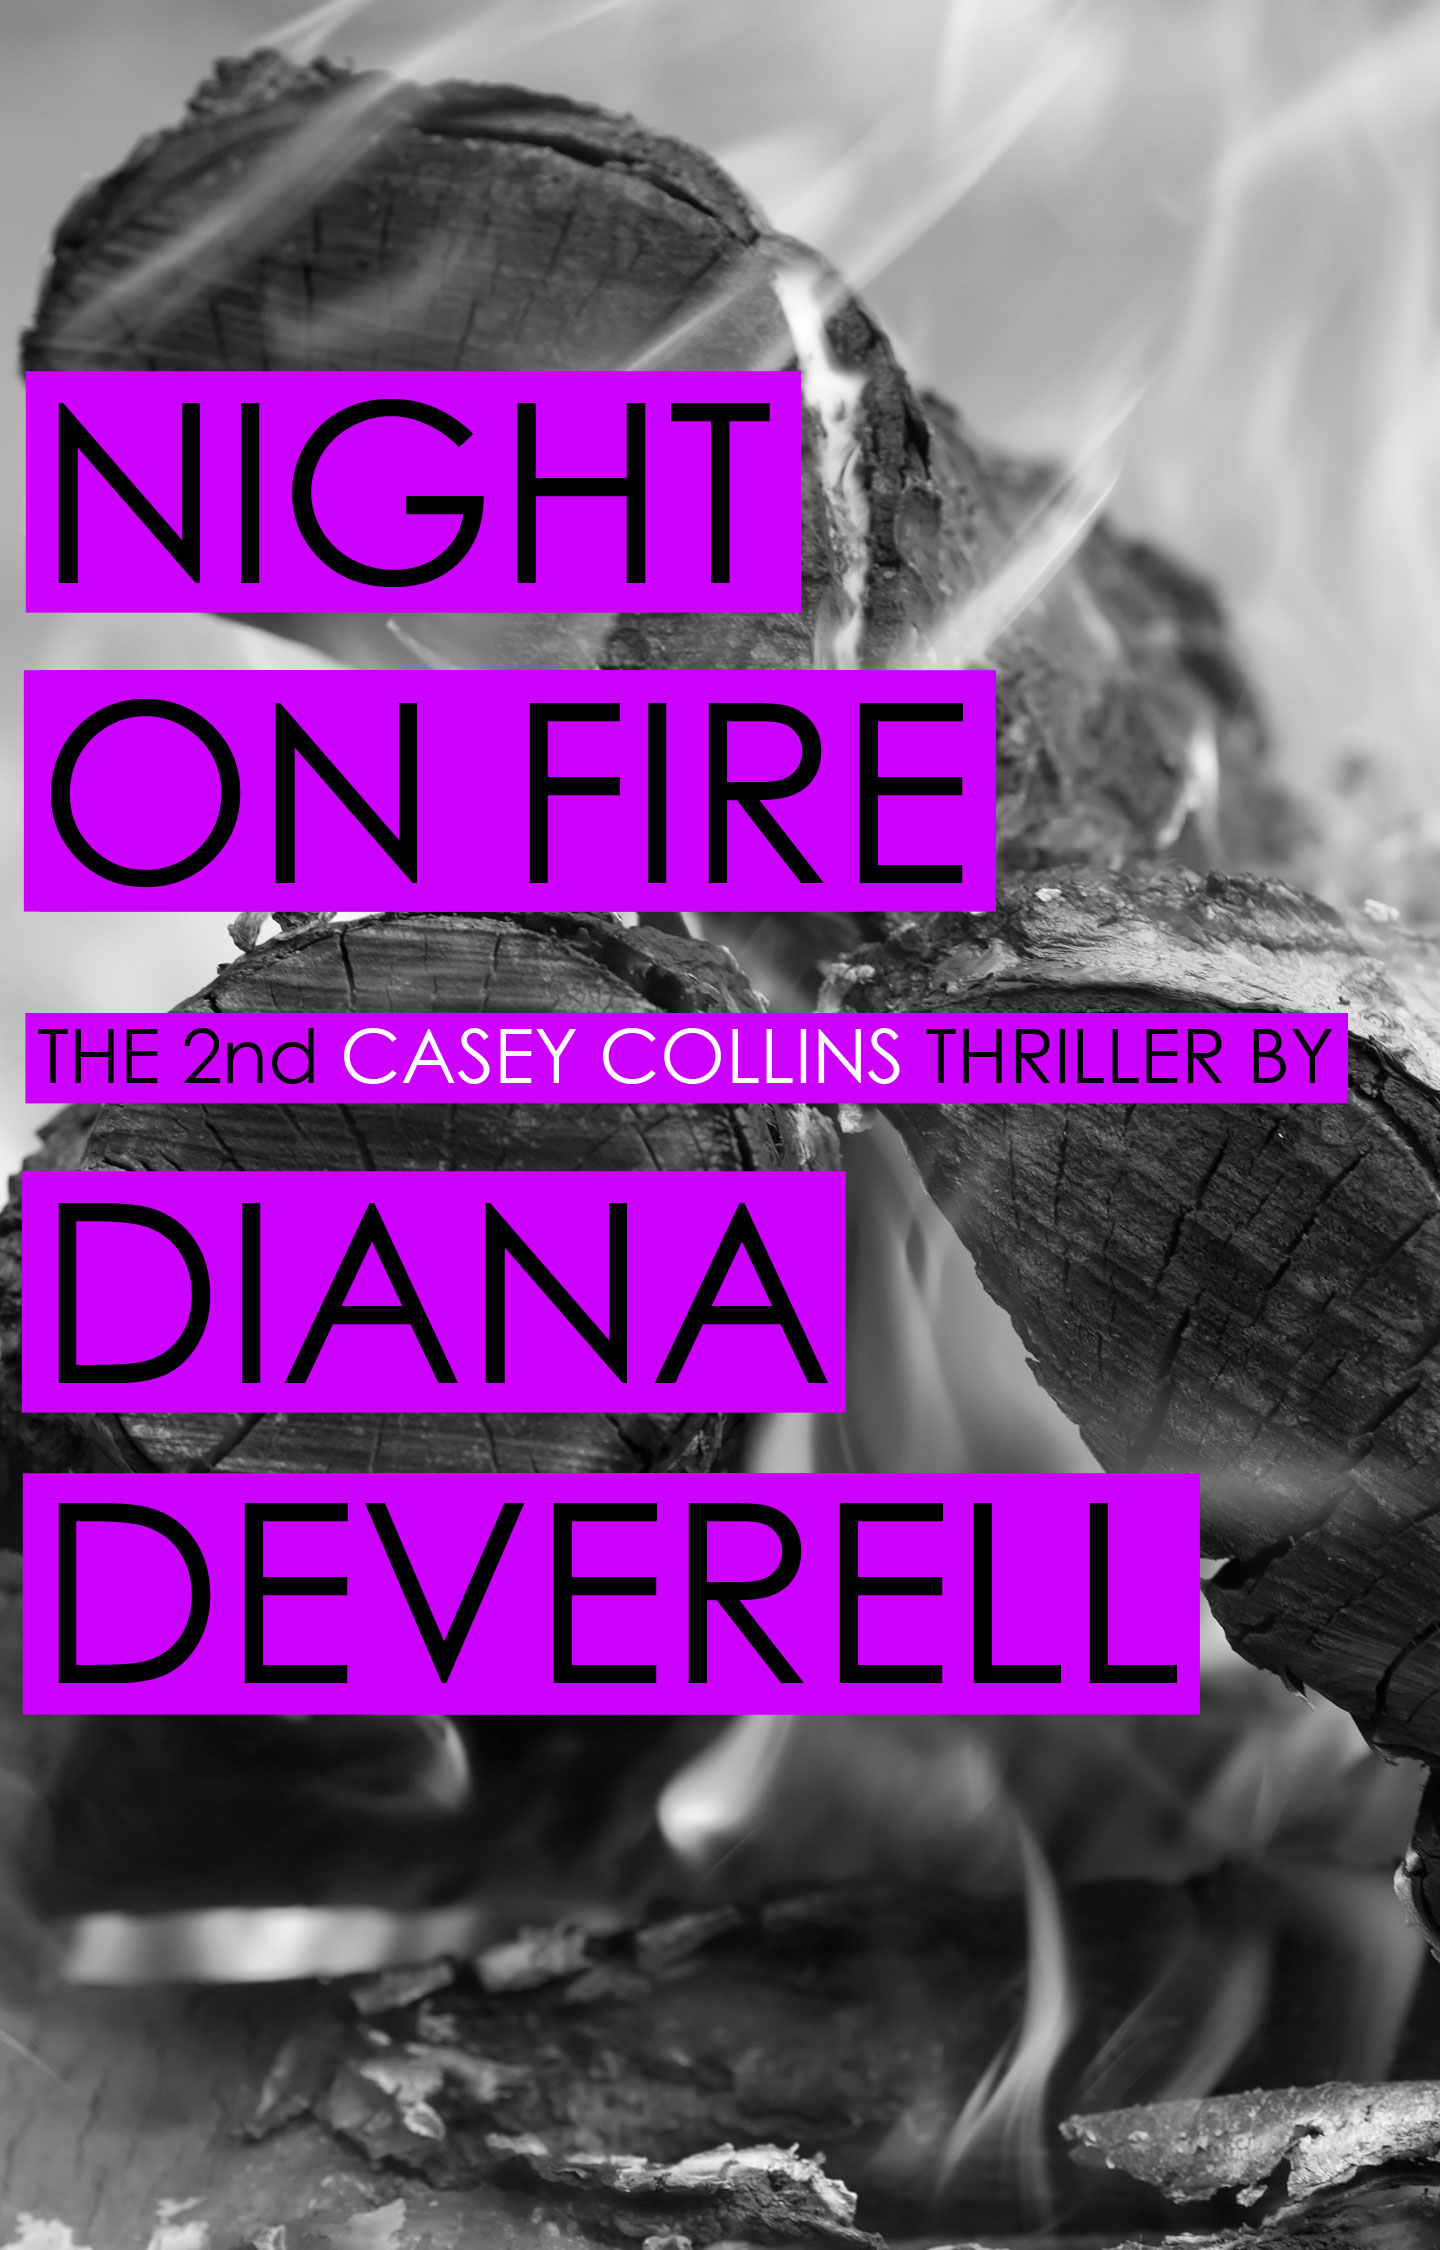 Night on Fire by Diana Deverell